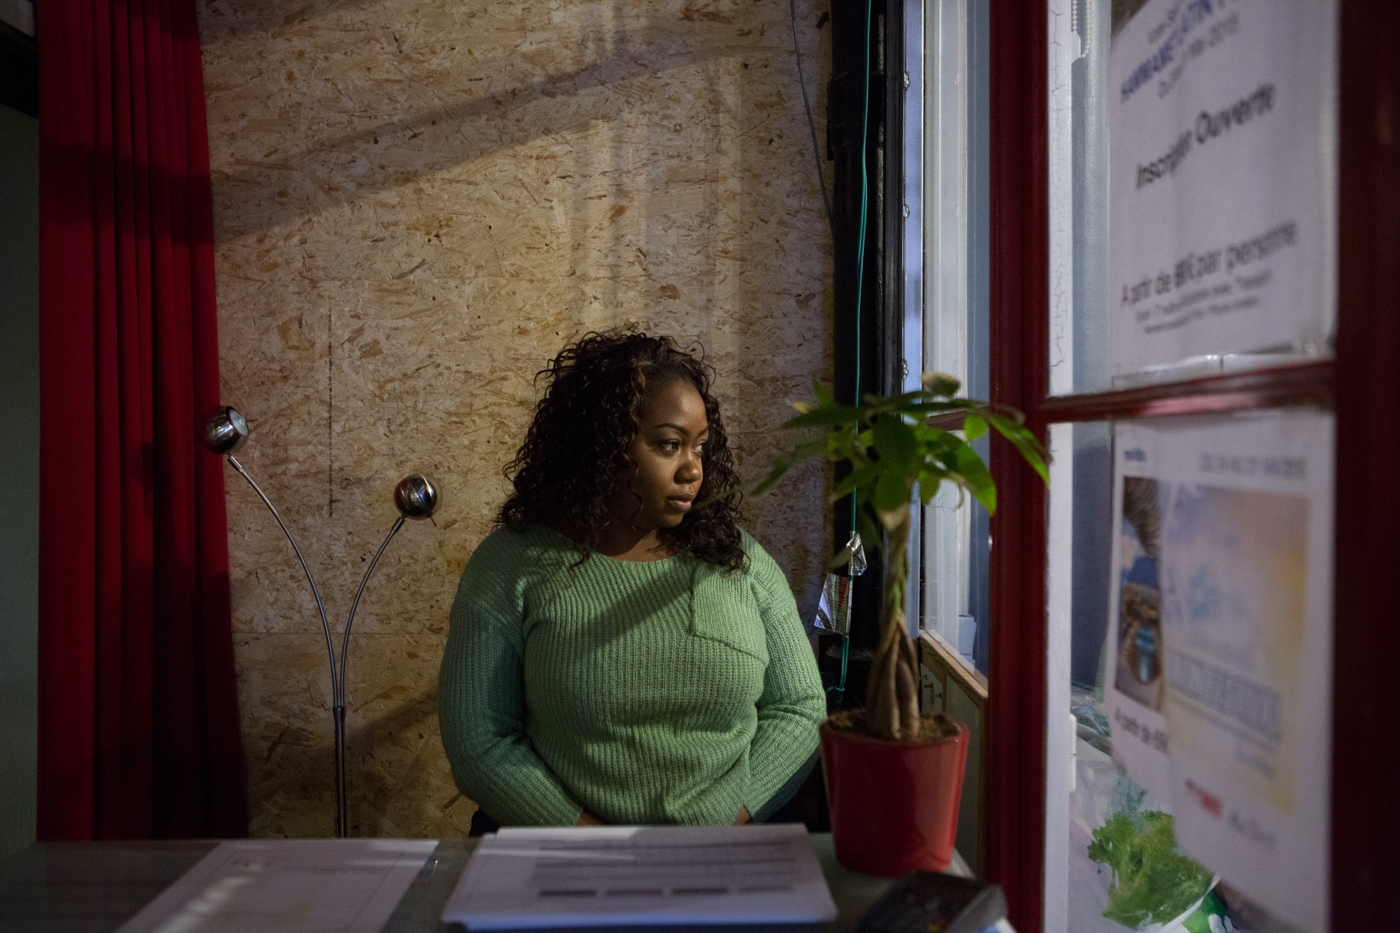 Linda Corinne Saul, stares at the window in the dance school she works as a hostess in Paris 2015